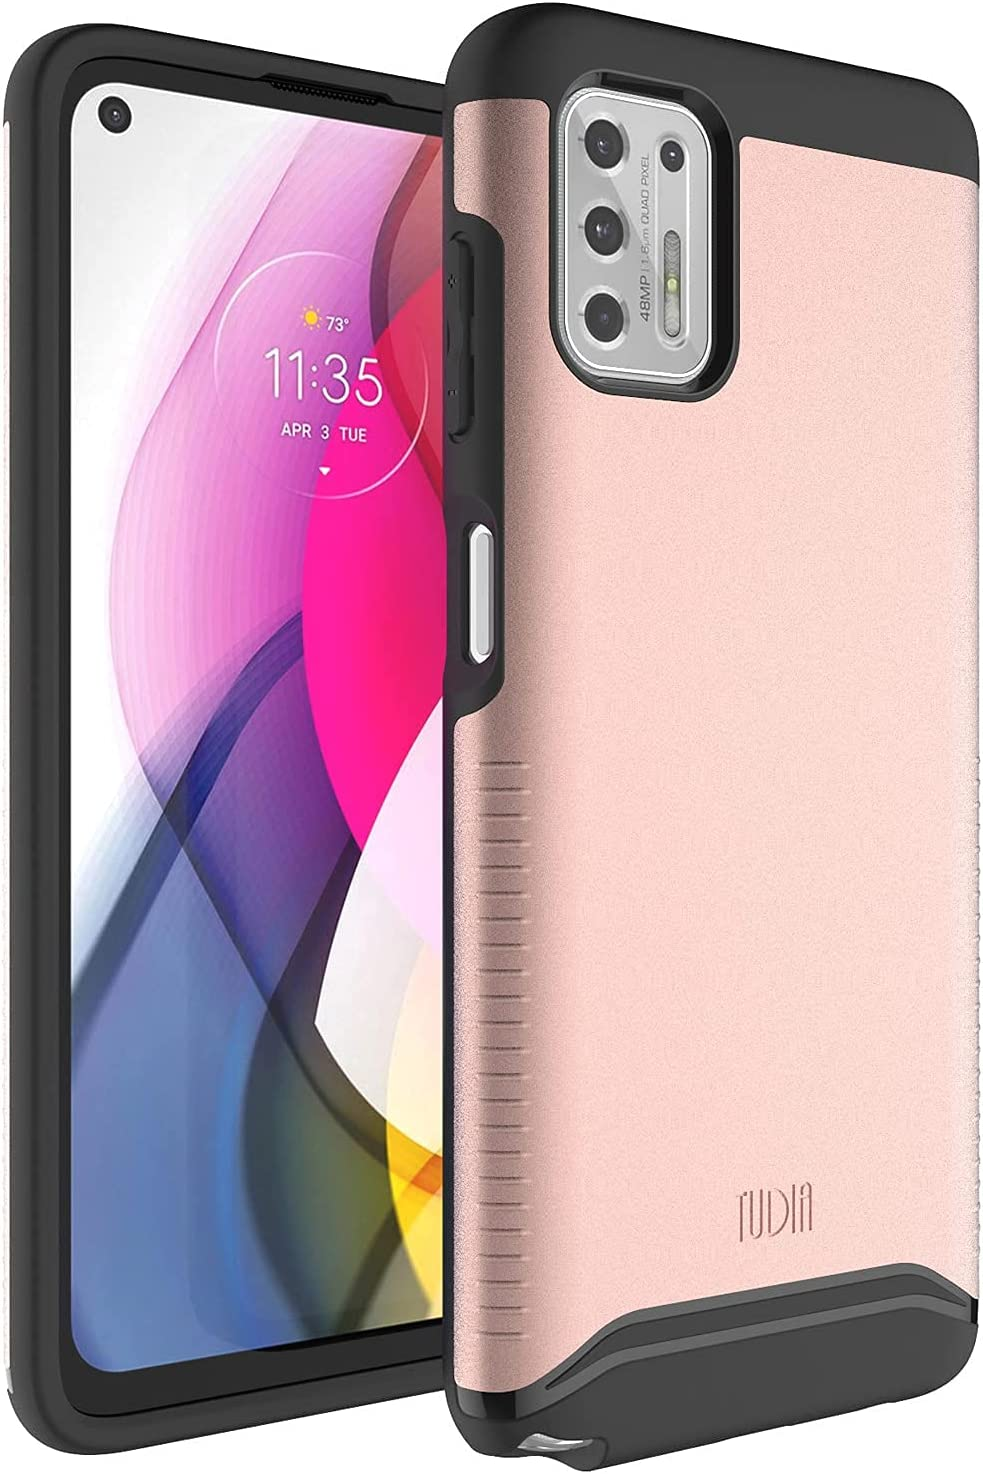 TUDIA DualShield Designed for Moto G Stylus 2021 Case [NOT Compatible with 5G], [Merge] Shockproof Dual Layer Slim Hard PC Soft TPU Protective Case - Rose Gold